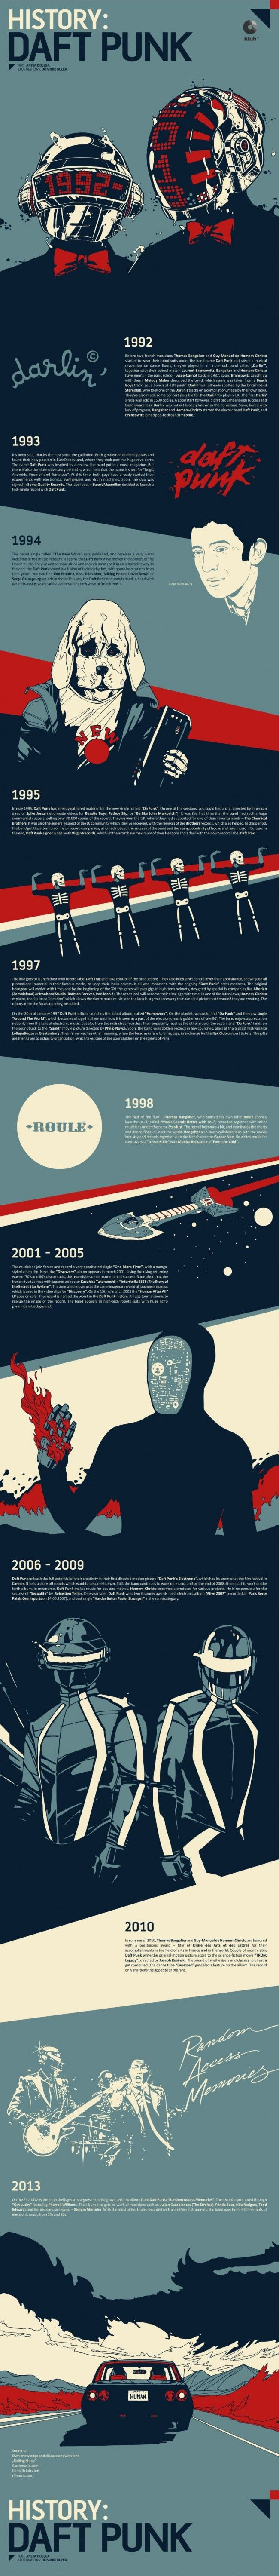 The electrifying story behind Daft Punk (infographic)